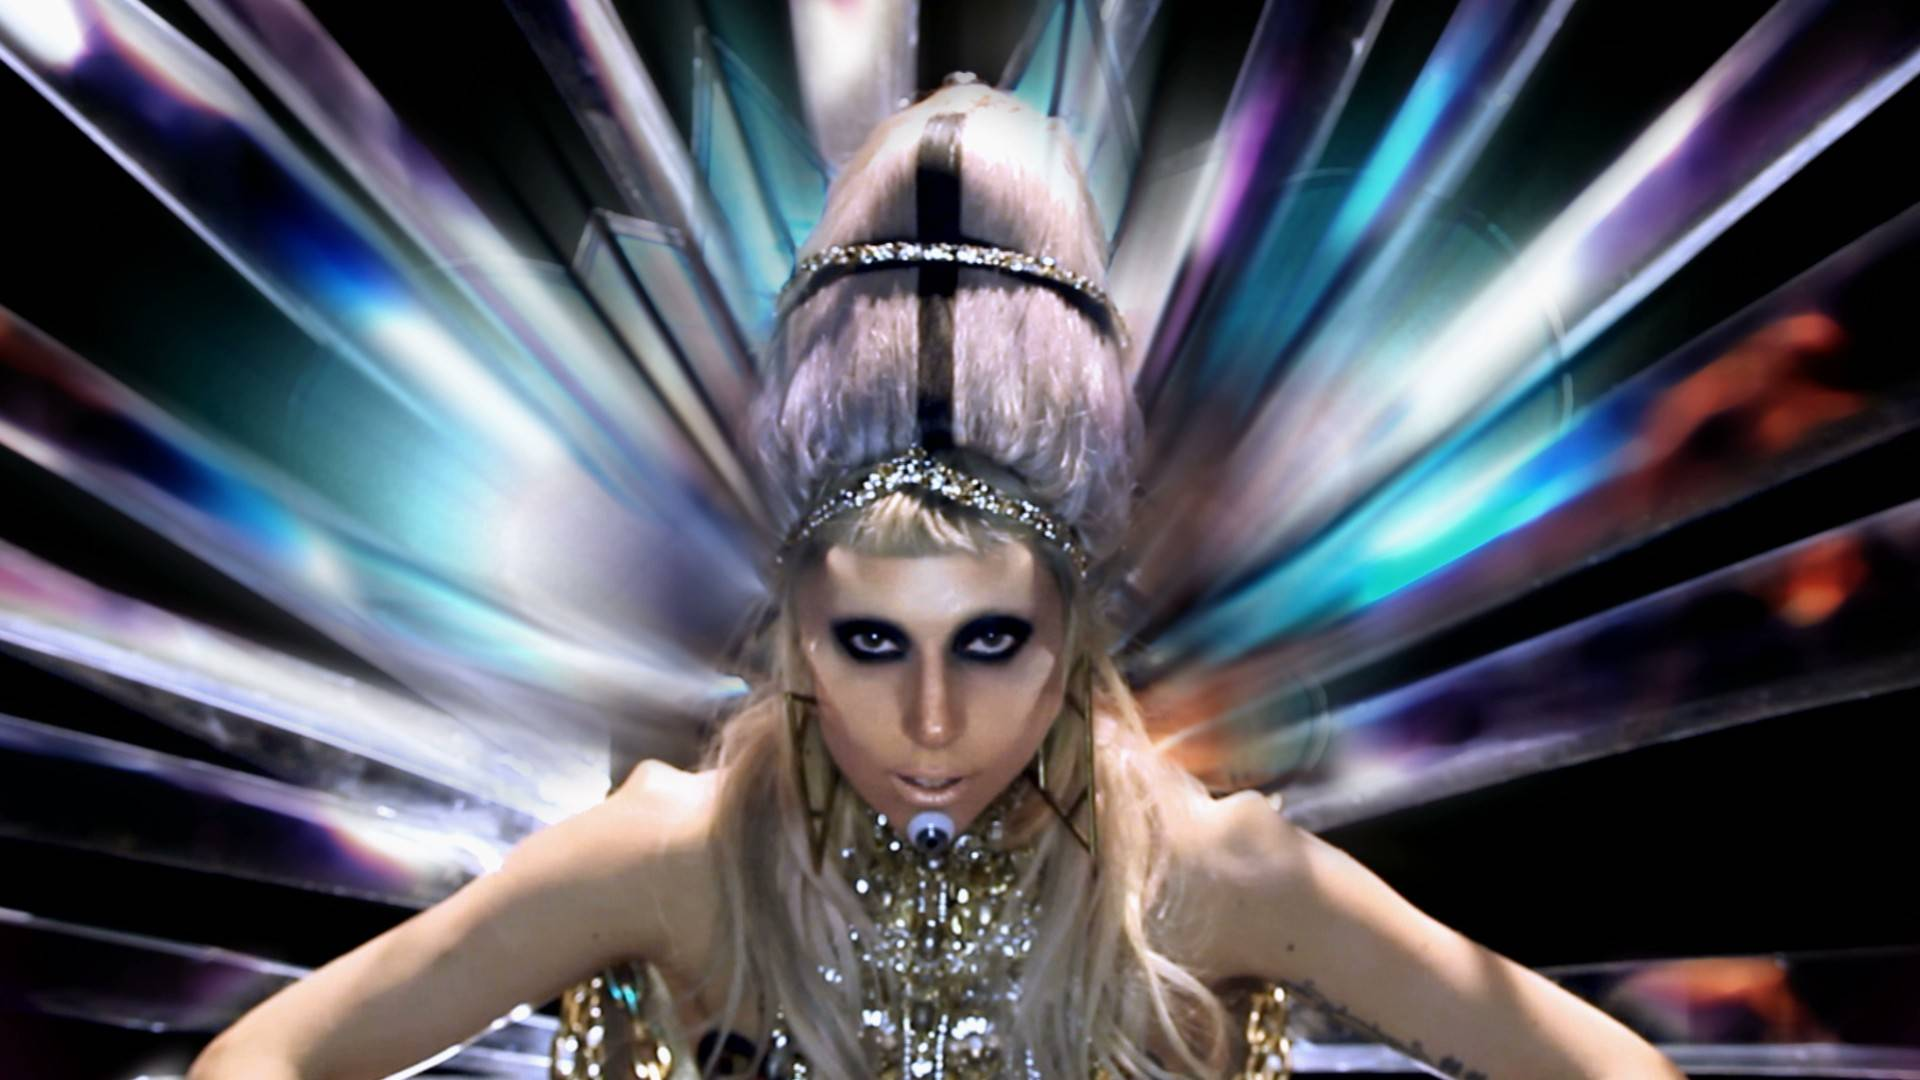 Lady Gaga returns to Chicago with her tour ArtRave: The Artpop Ball at the United Center on Friday, July 11.